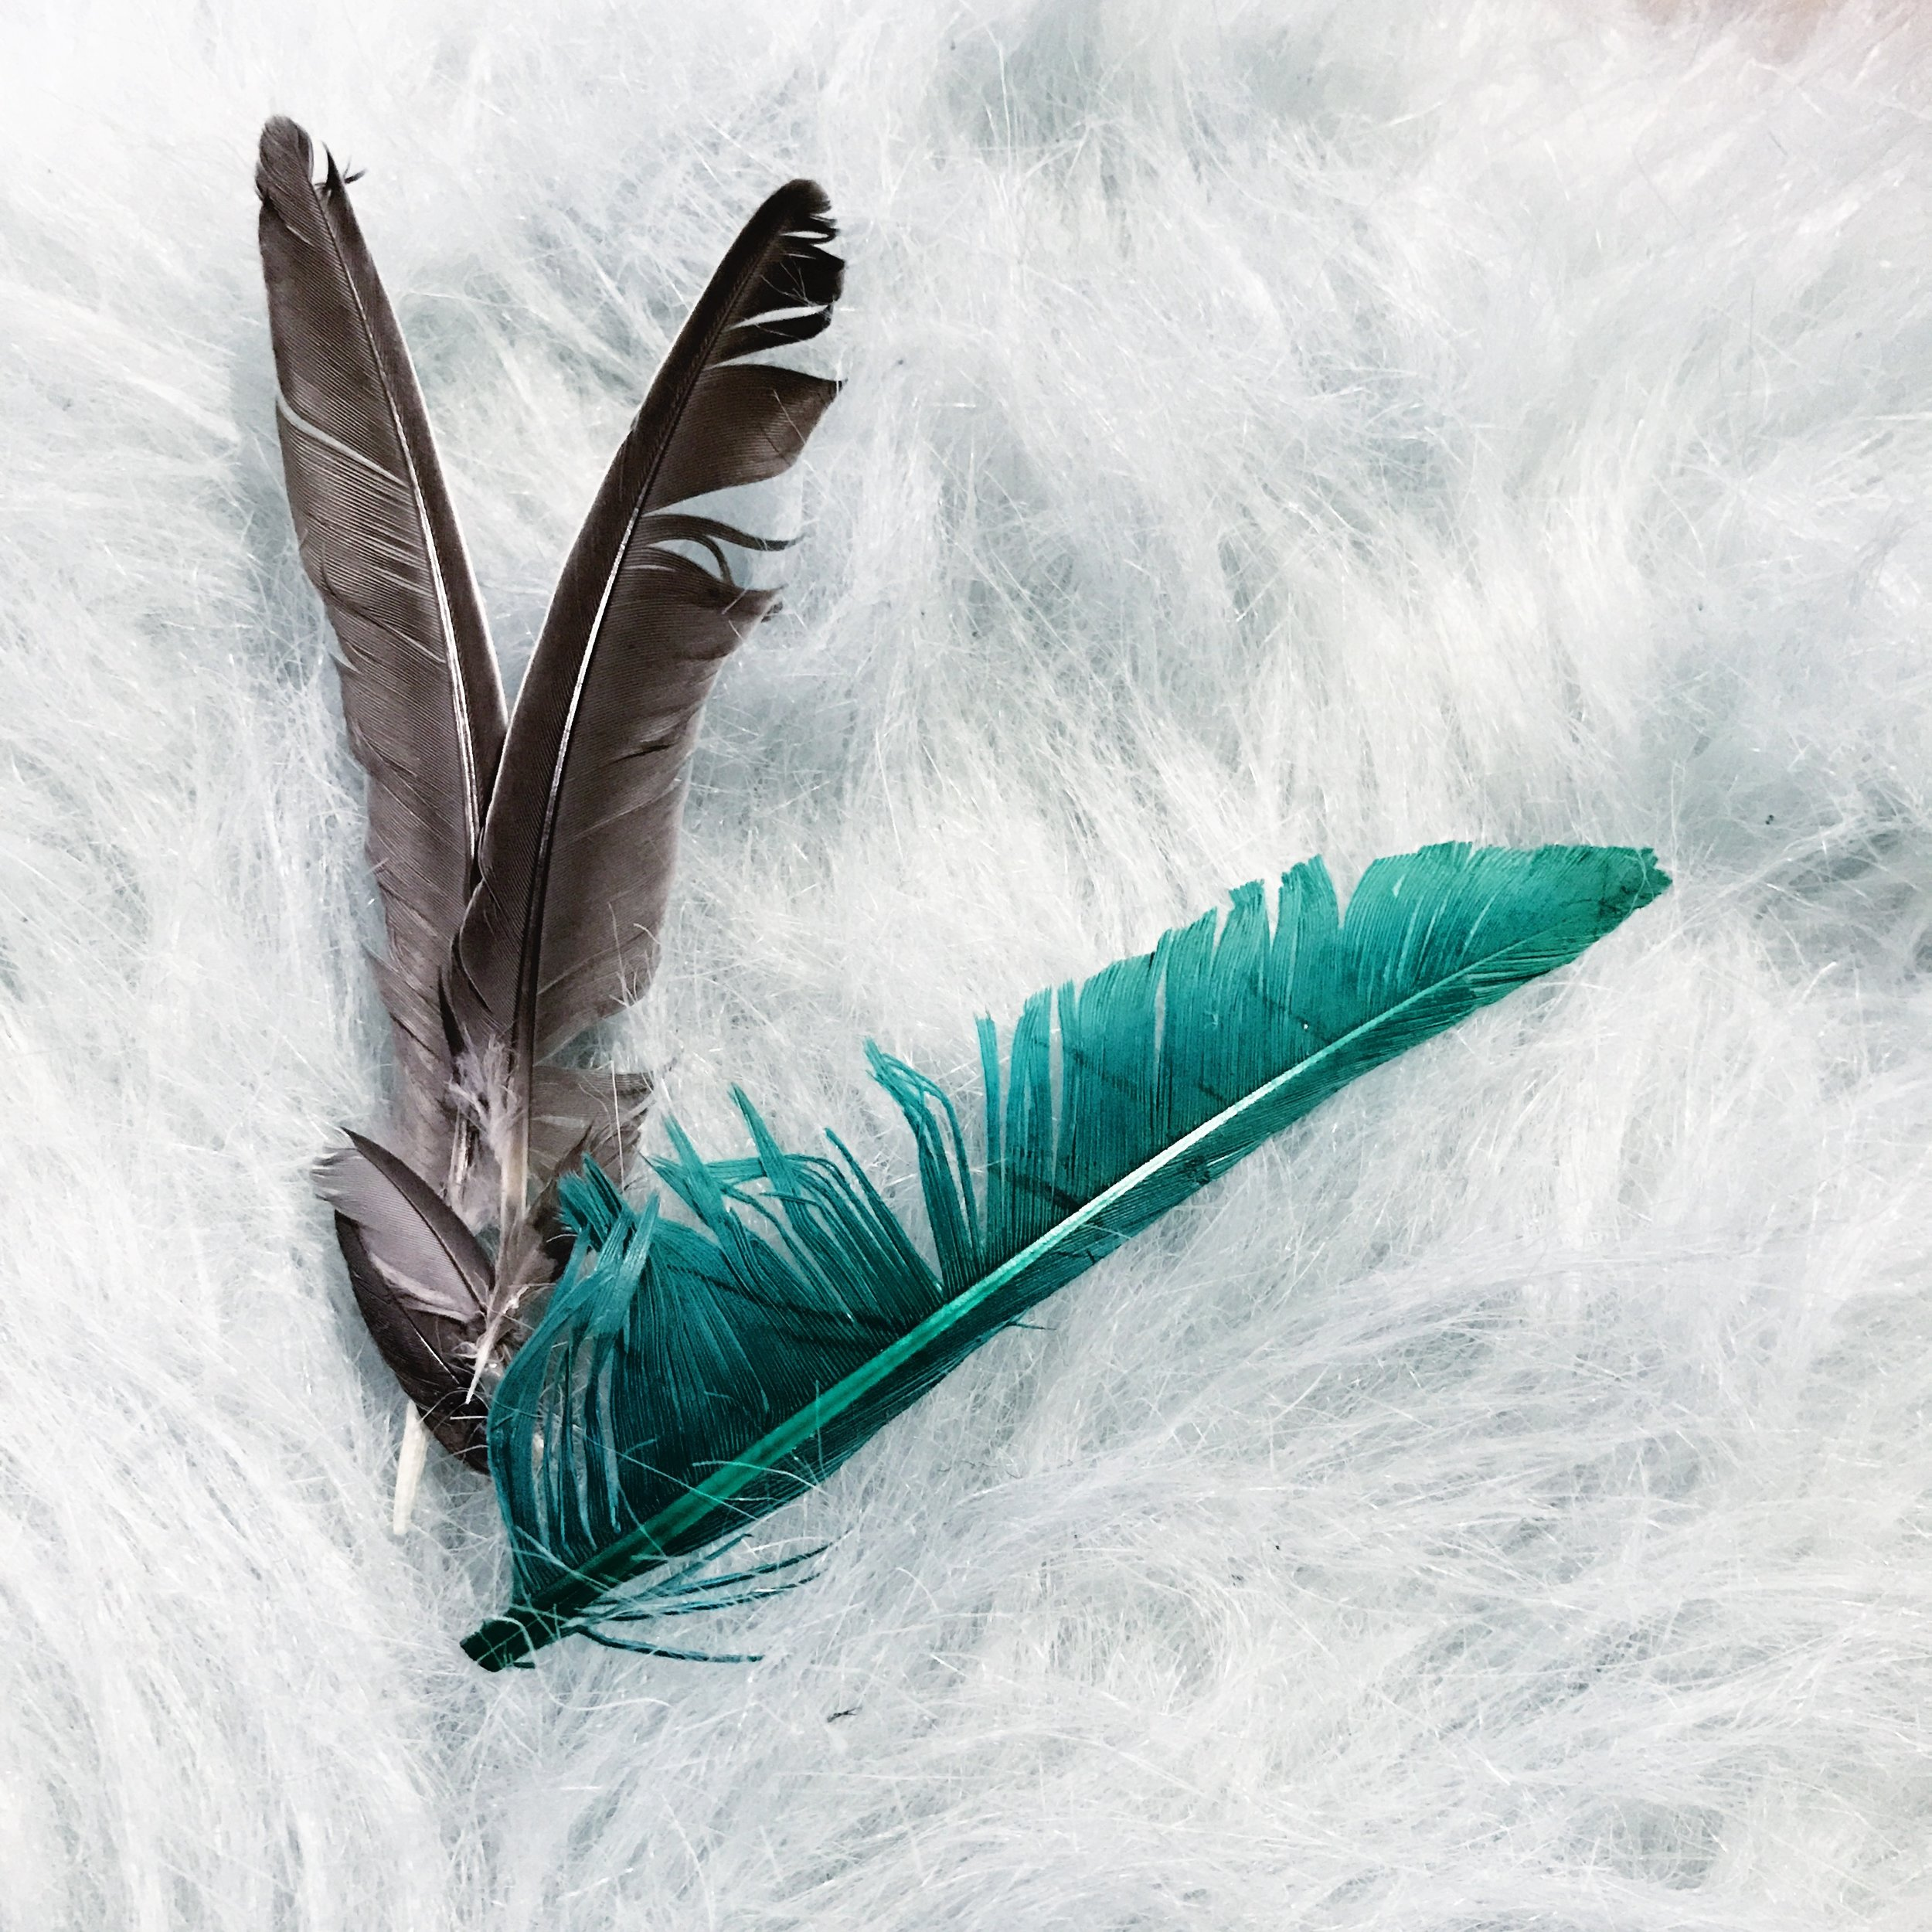 Feathers messages sent from Angels, read more at www.theonyxfeather.com